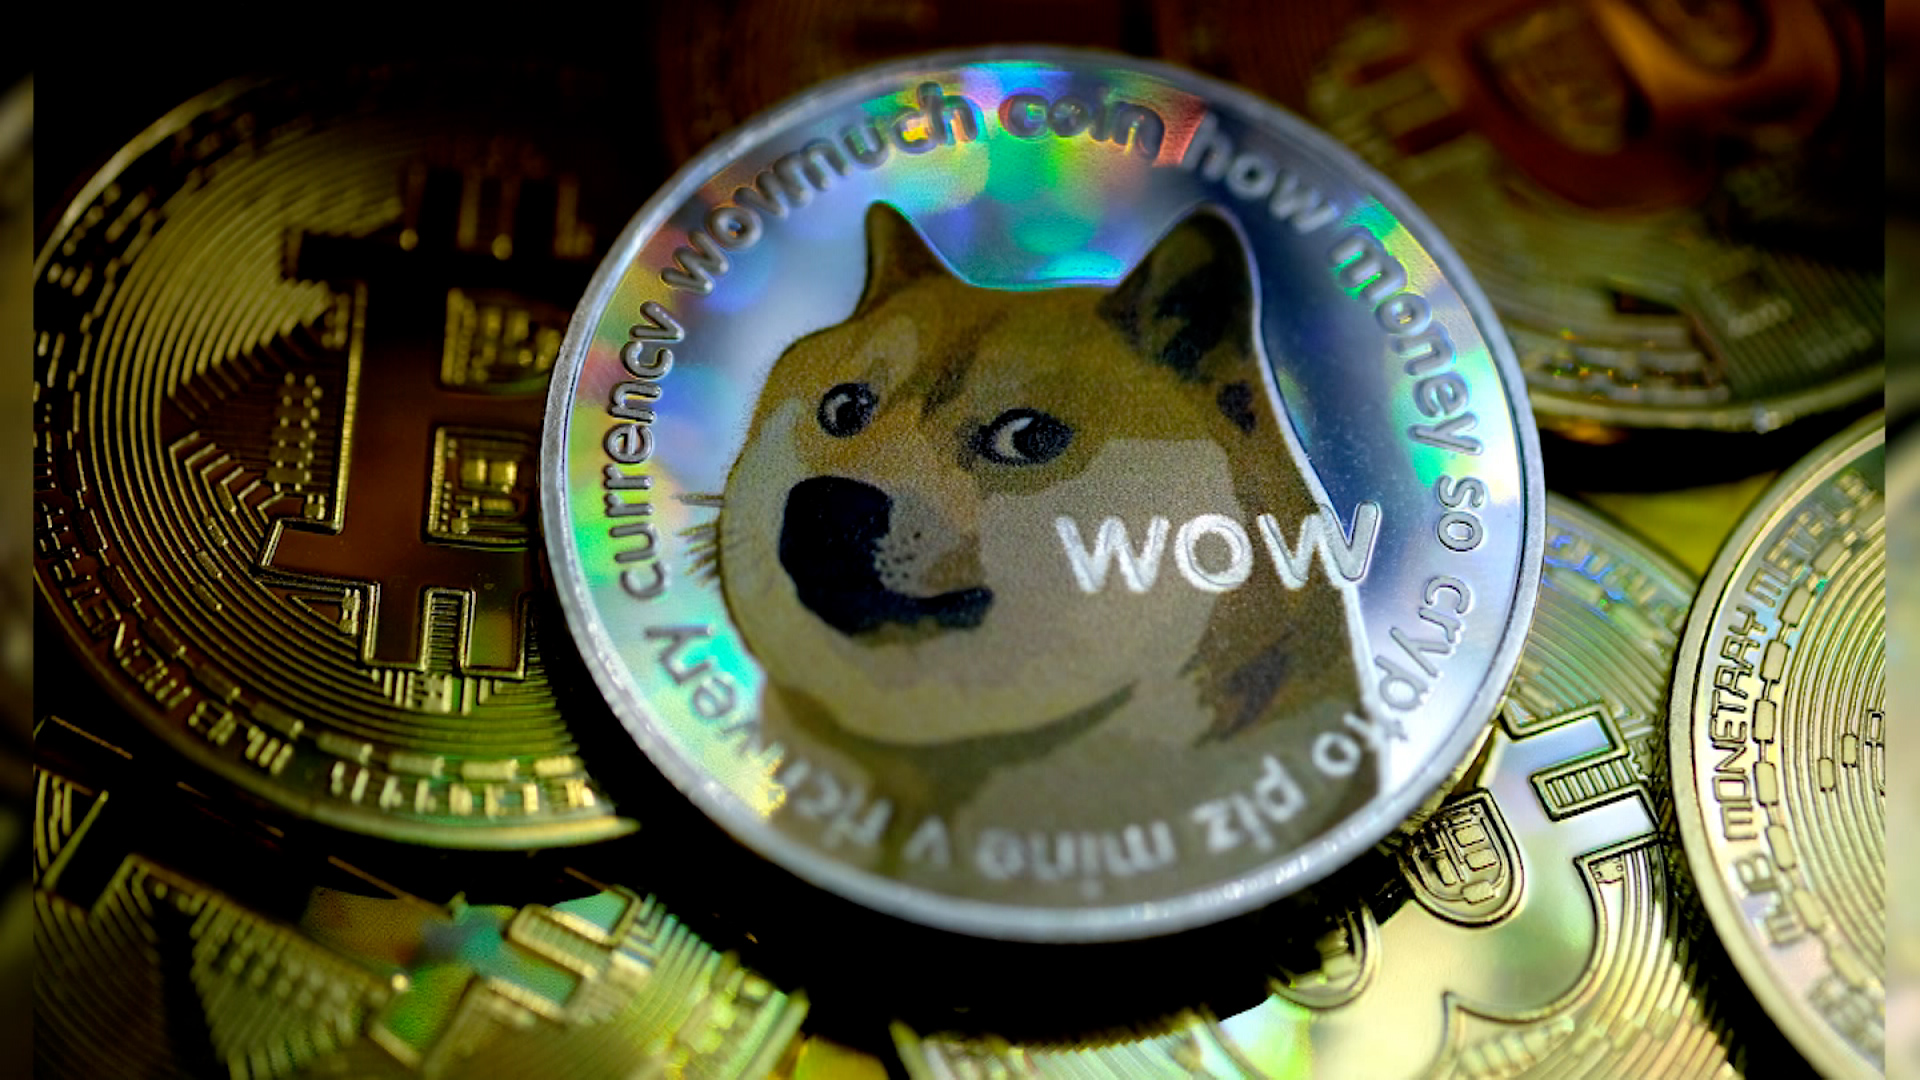 Dogecoin tumbles after Elon Musk jokes about it on 'SNL'